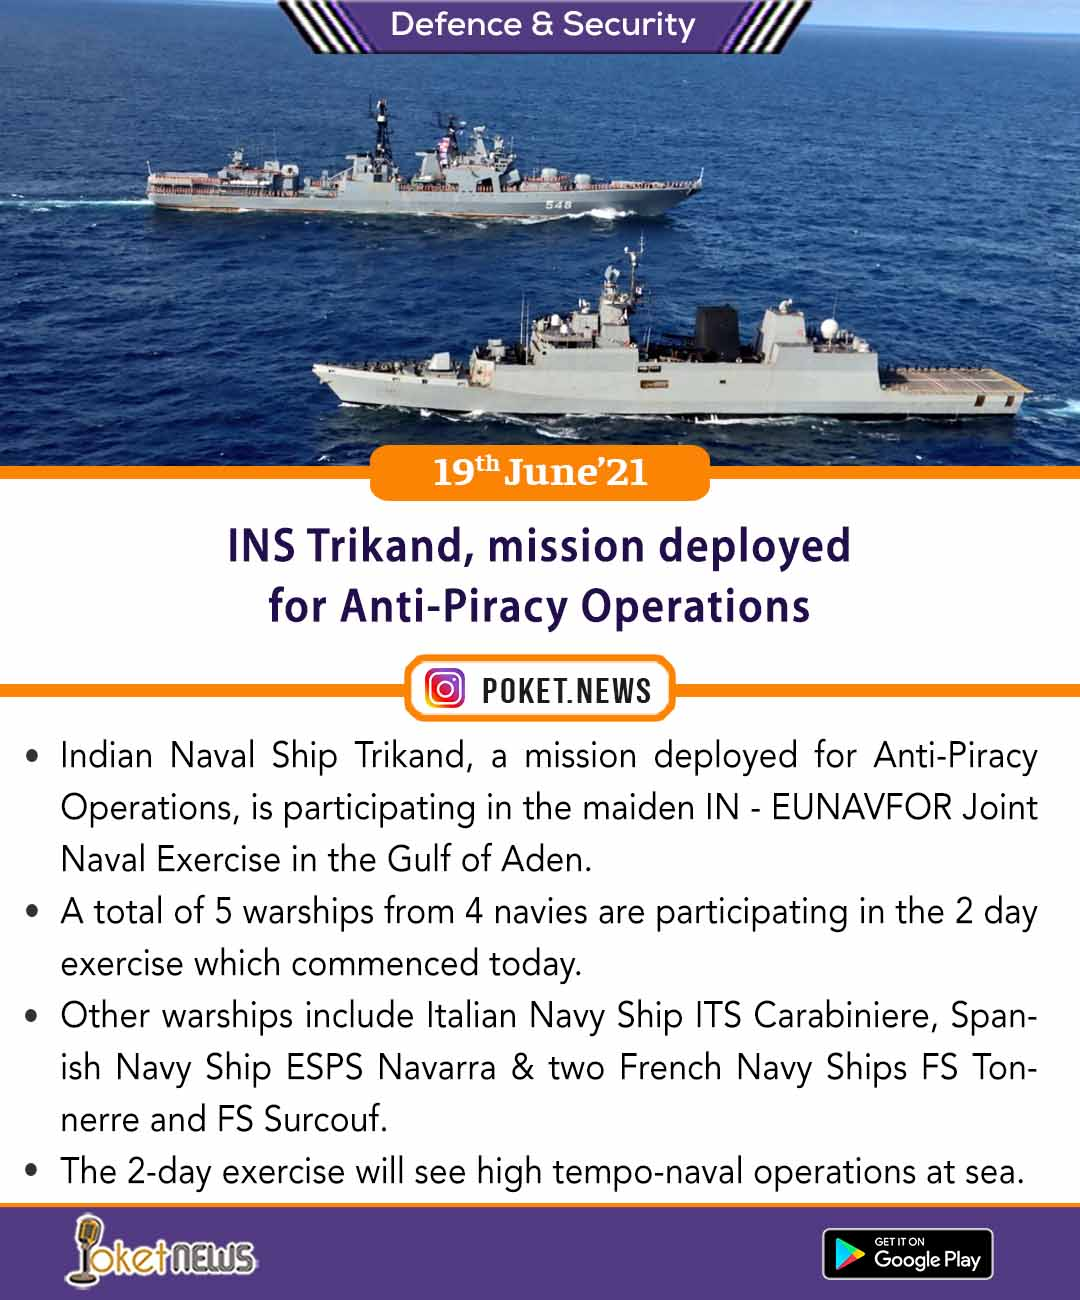 INS Trikand, mission deployed for Anti-Piracy Operations